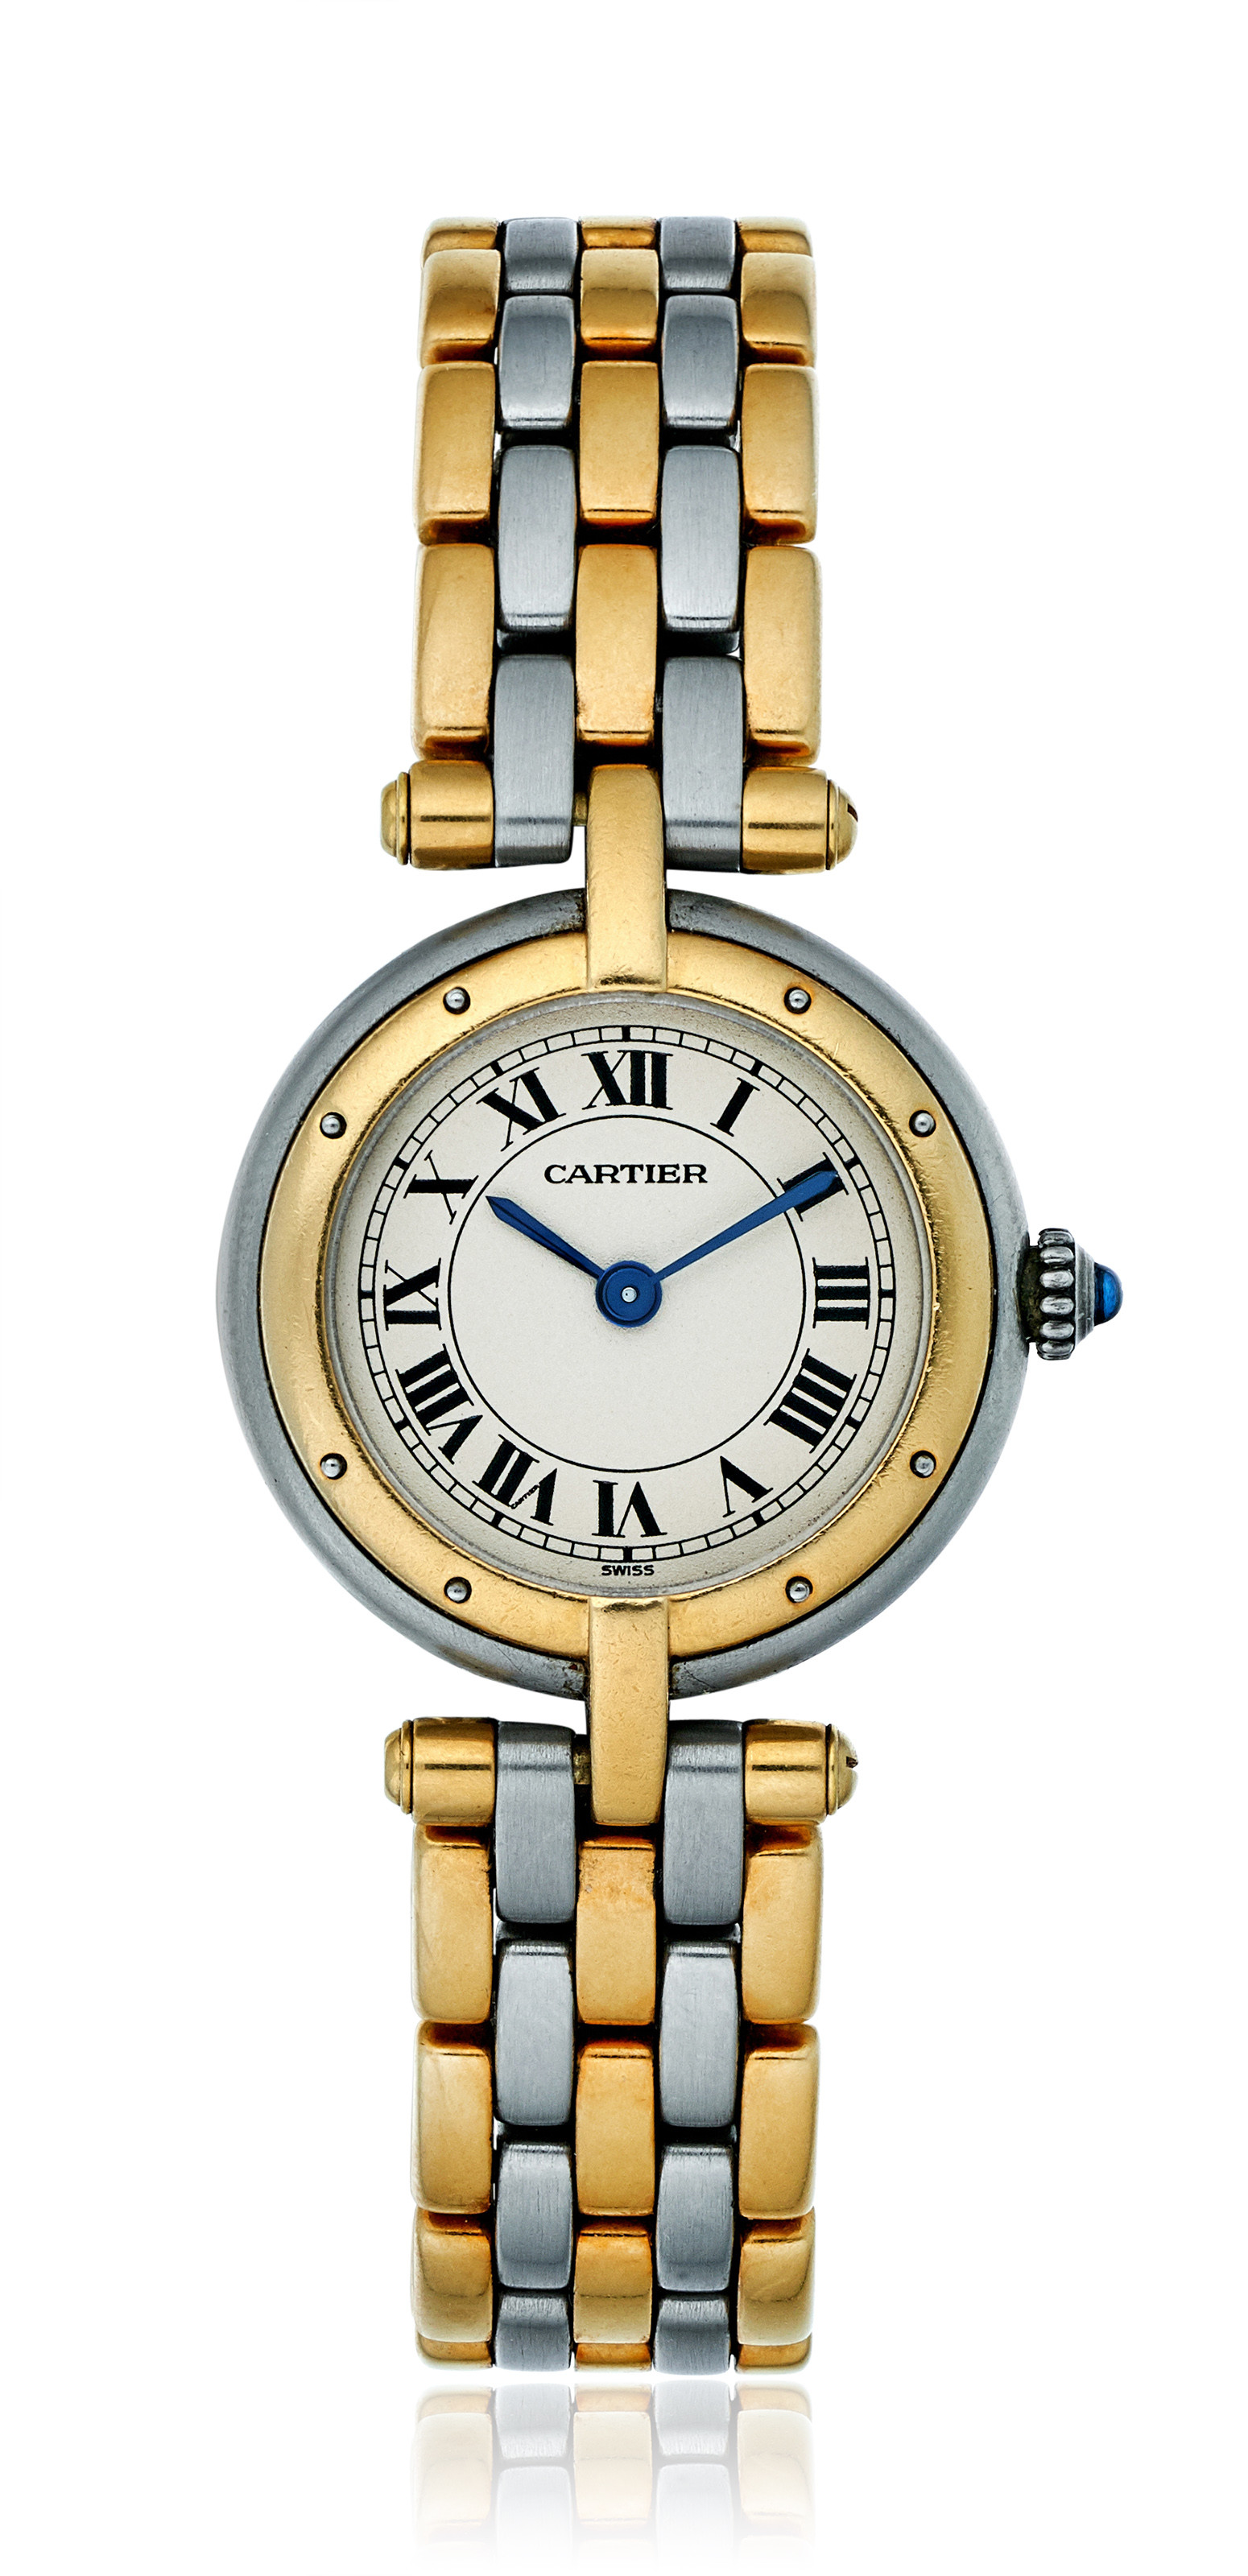 CARTIER PANTHERE 24MM GOLD&STEEL REF: 166920